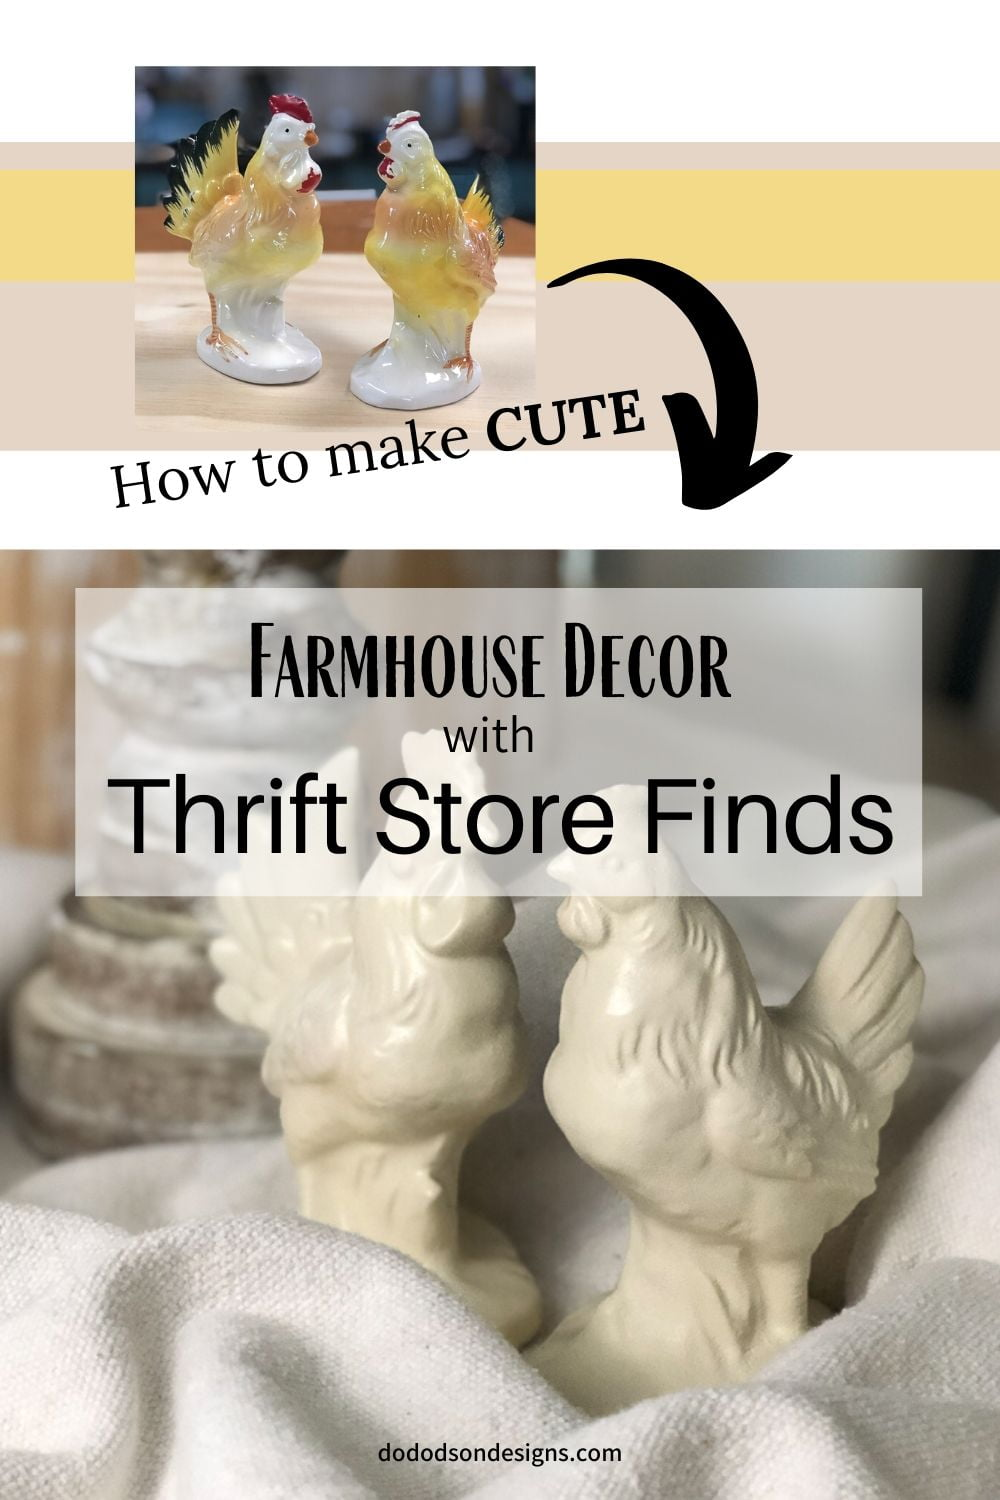 Transform Thrift Store Finds Into Farmhouse Decor